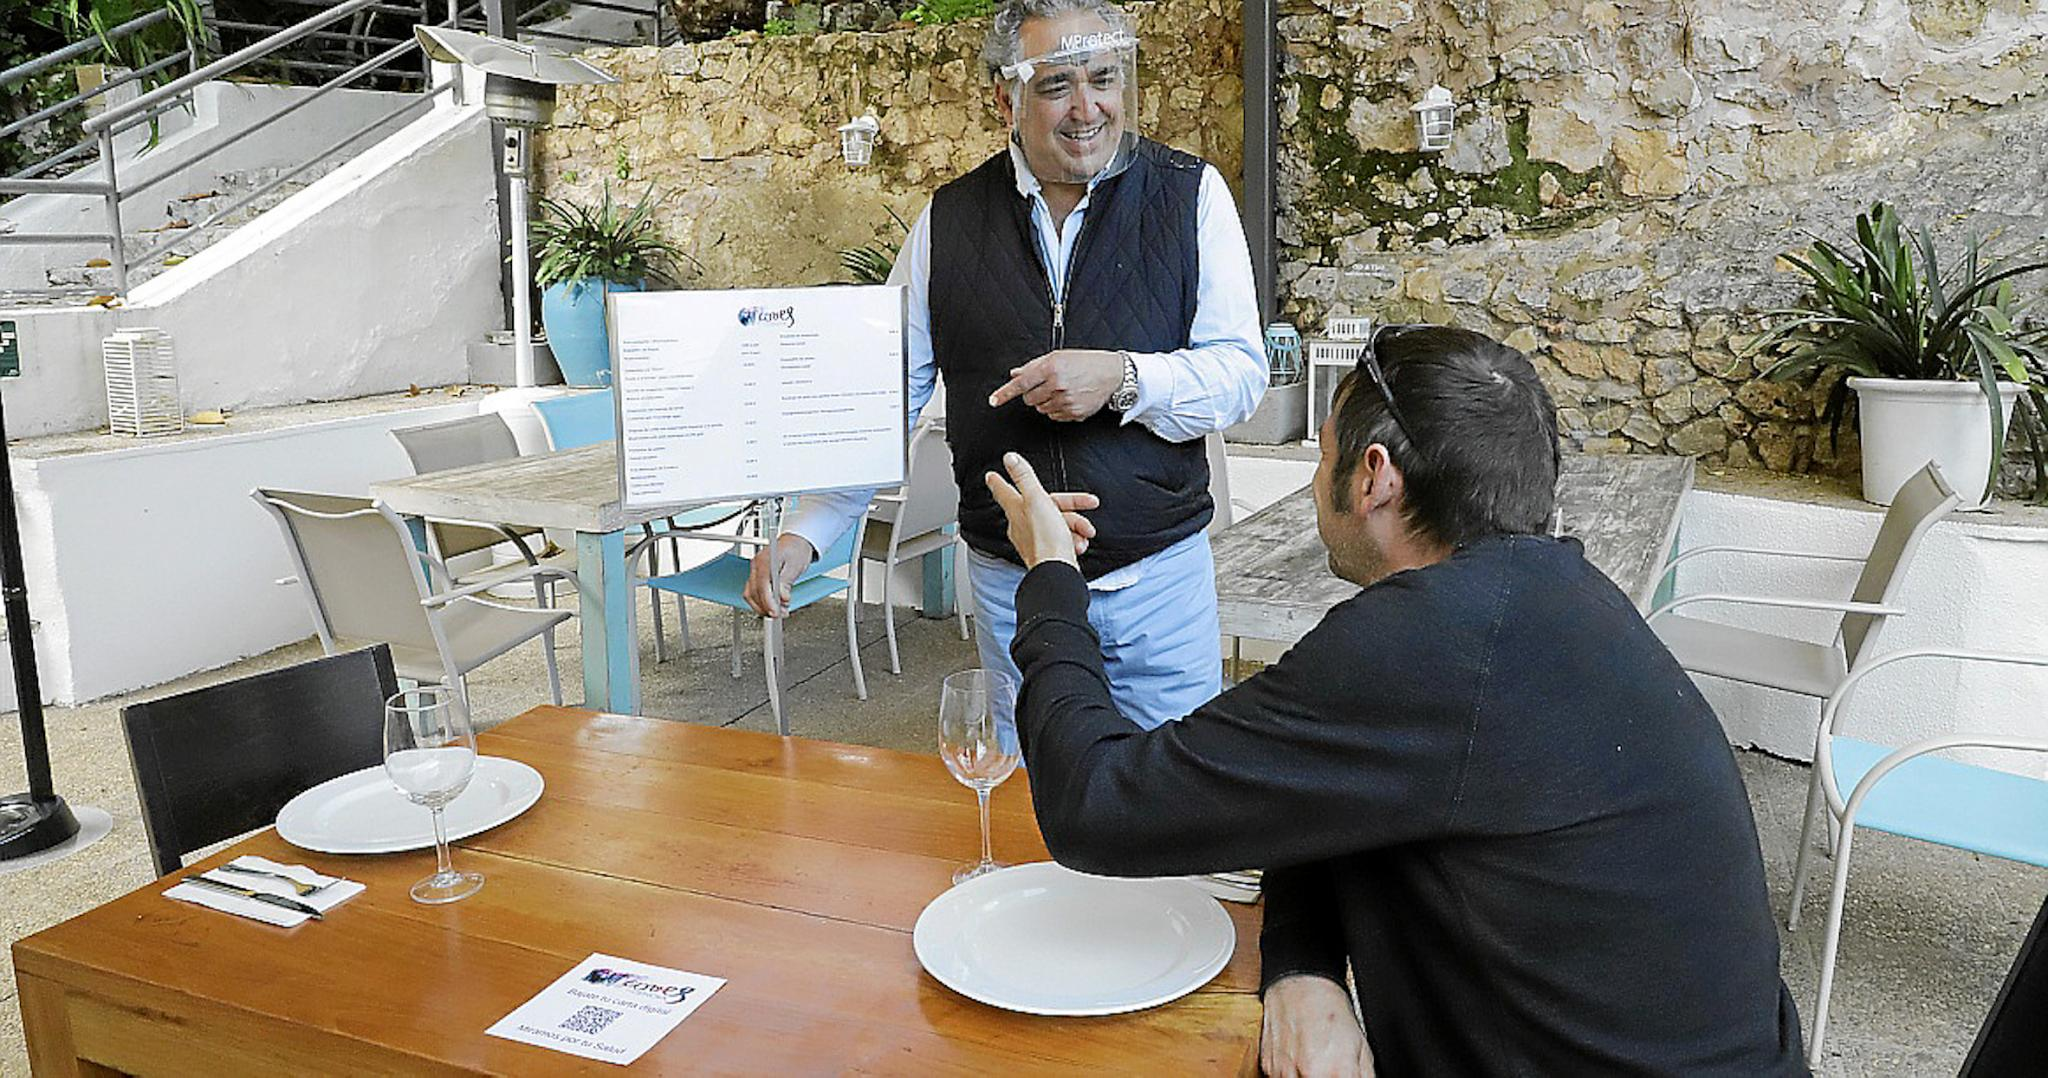 Bars & Restaurants to safeguard customers and staff.